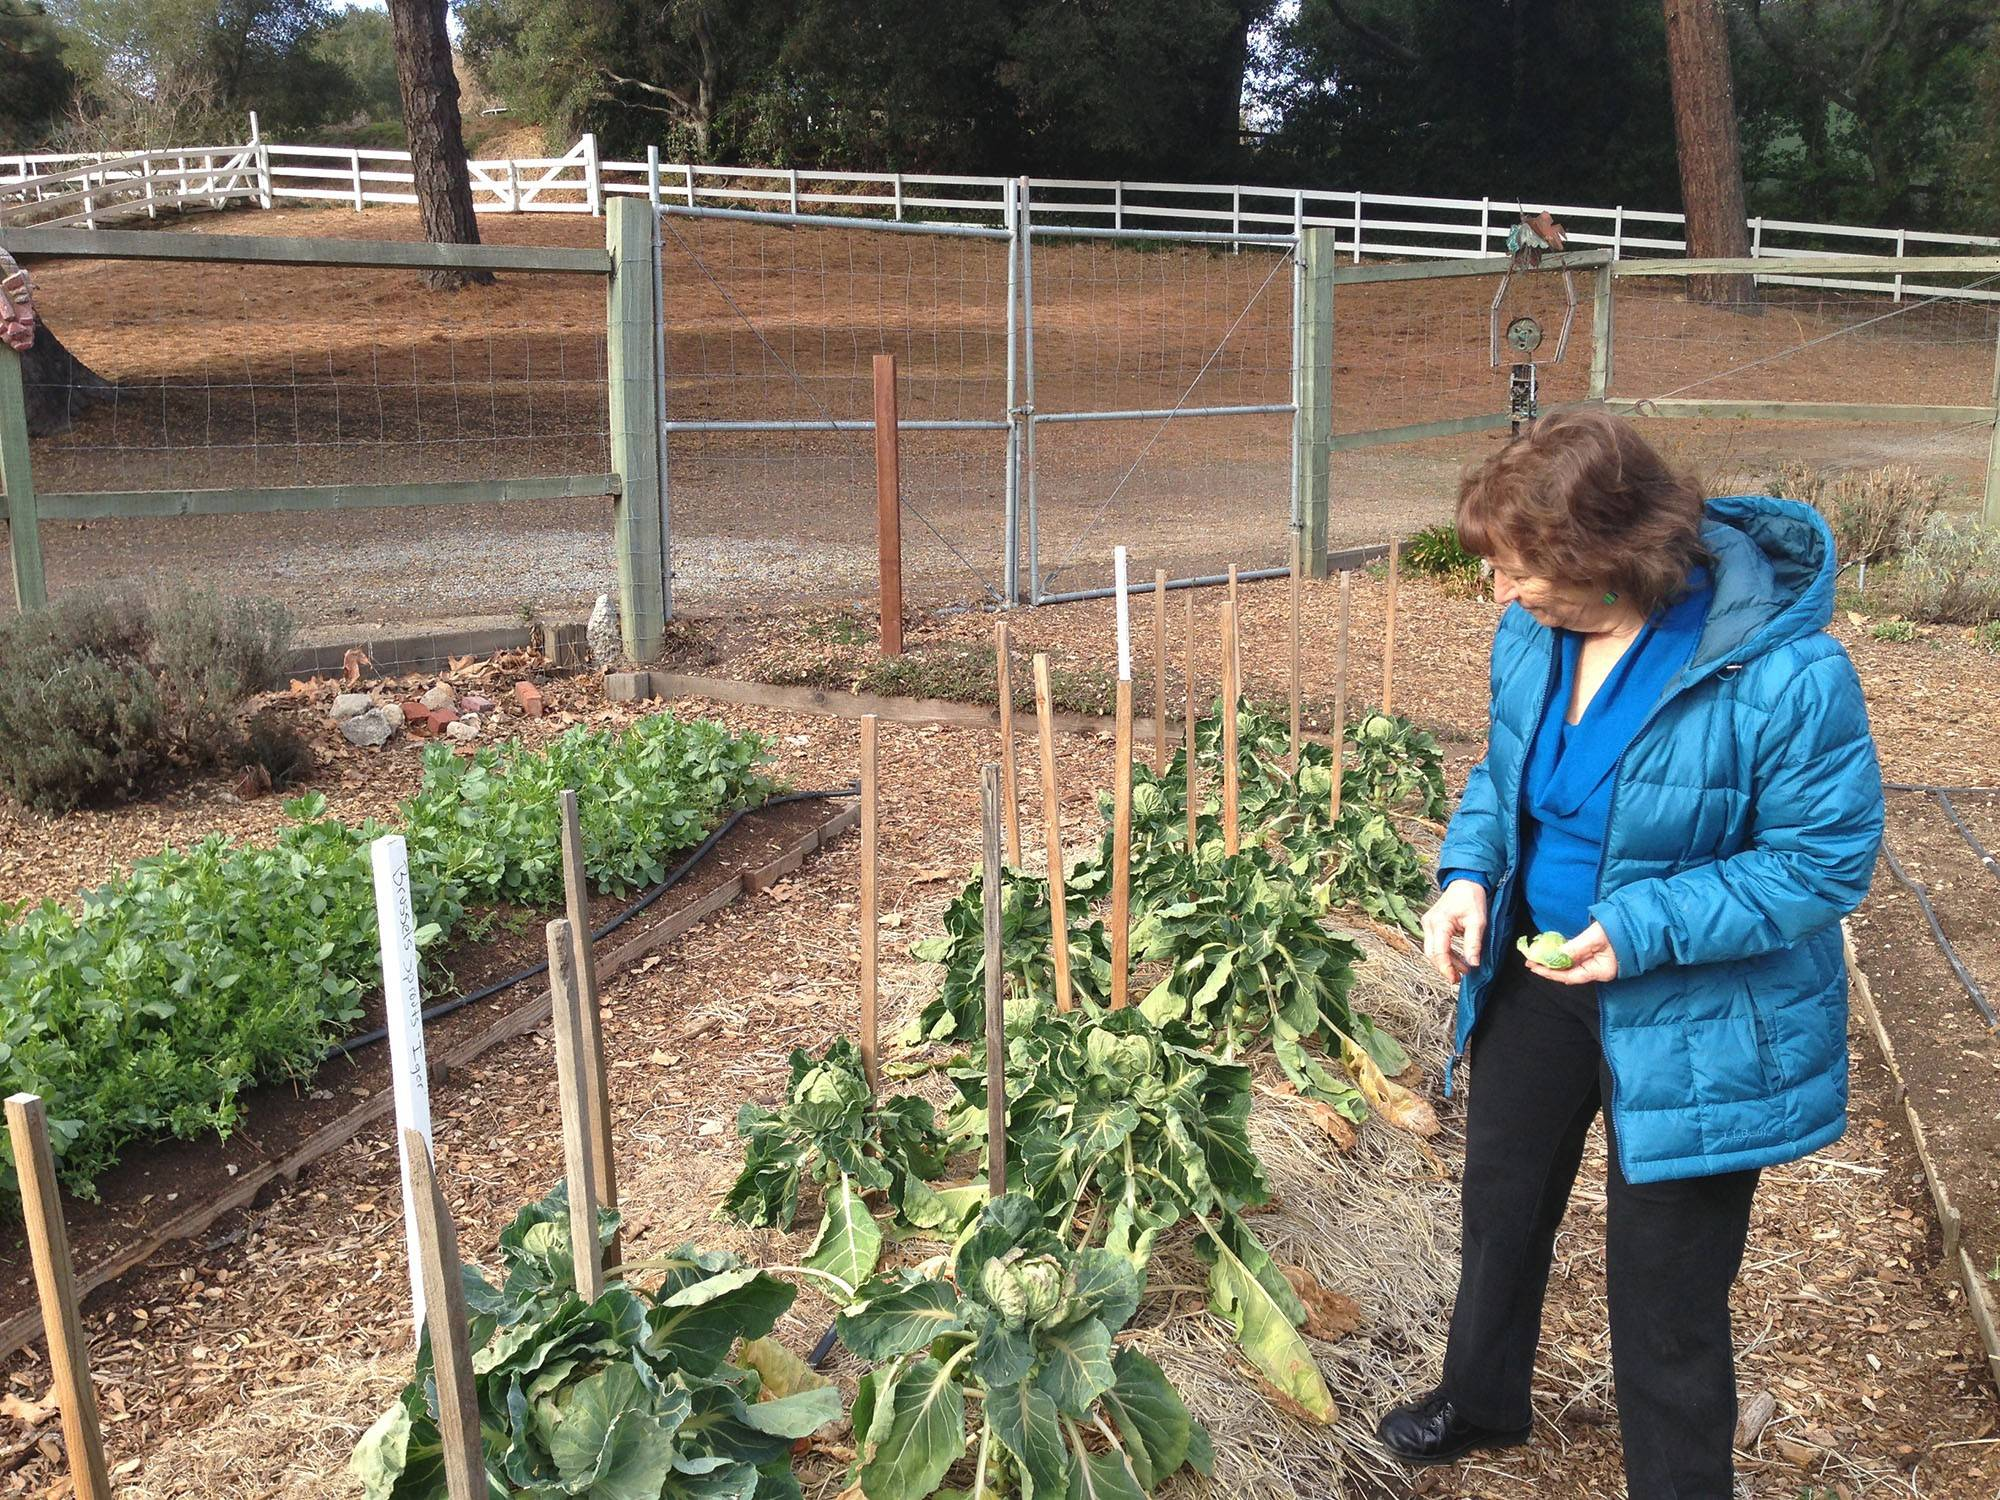 In one of her two trial gardens at her home in Santa Cruz, Calif., seed catalog owner Renee Shepherd evaluates a new Dutch variety of Brussels sprouts.